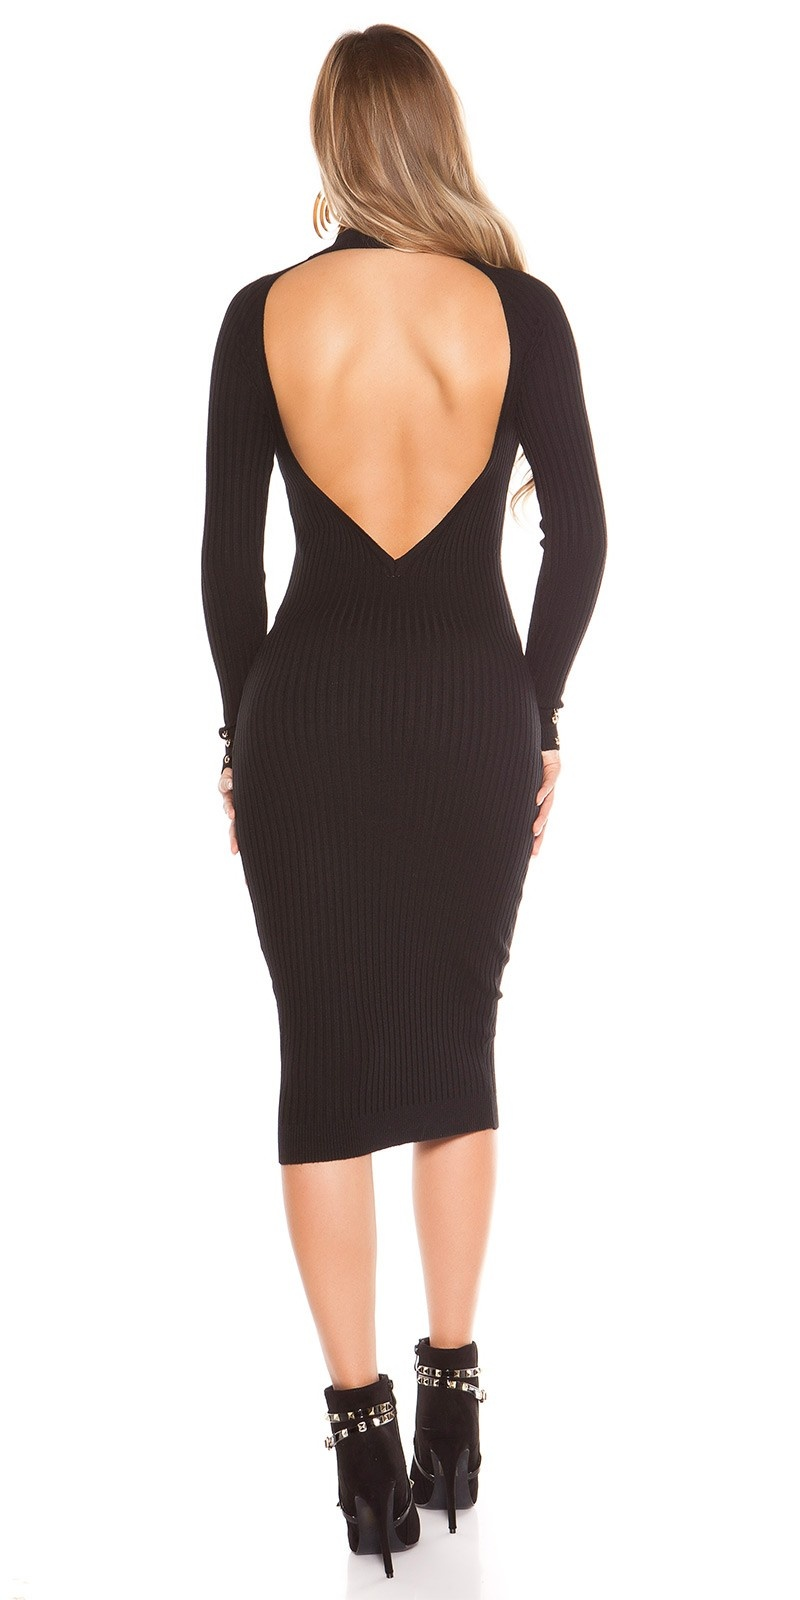 Sexy KouClaRipp knit dress with sexy back Black